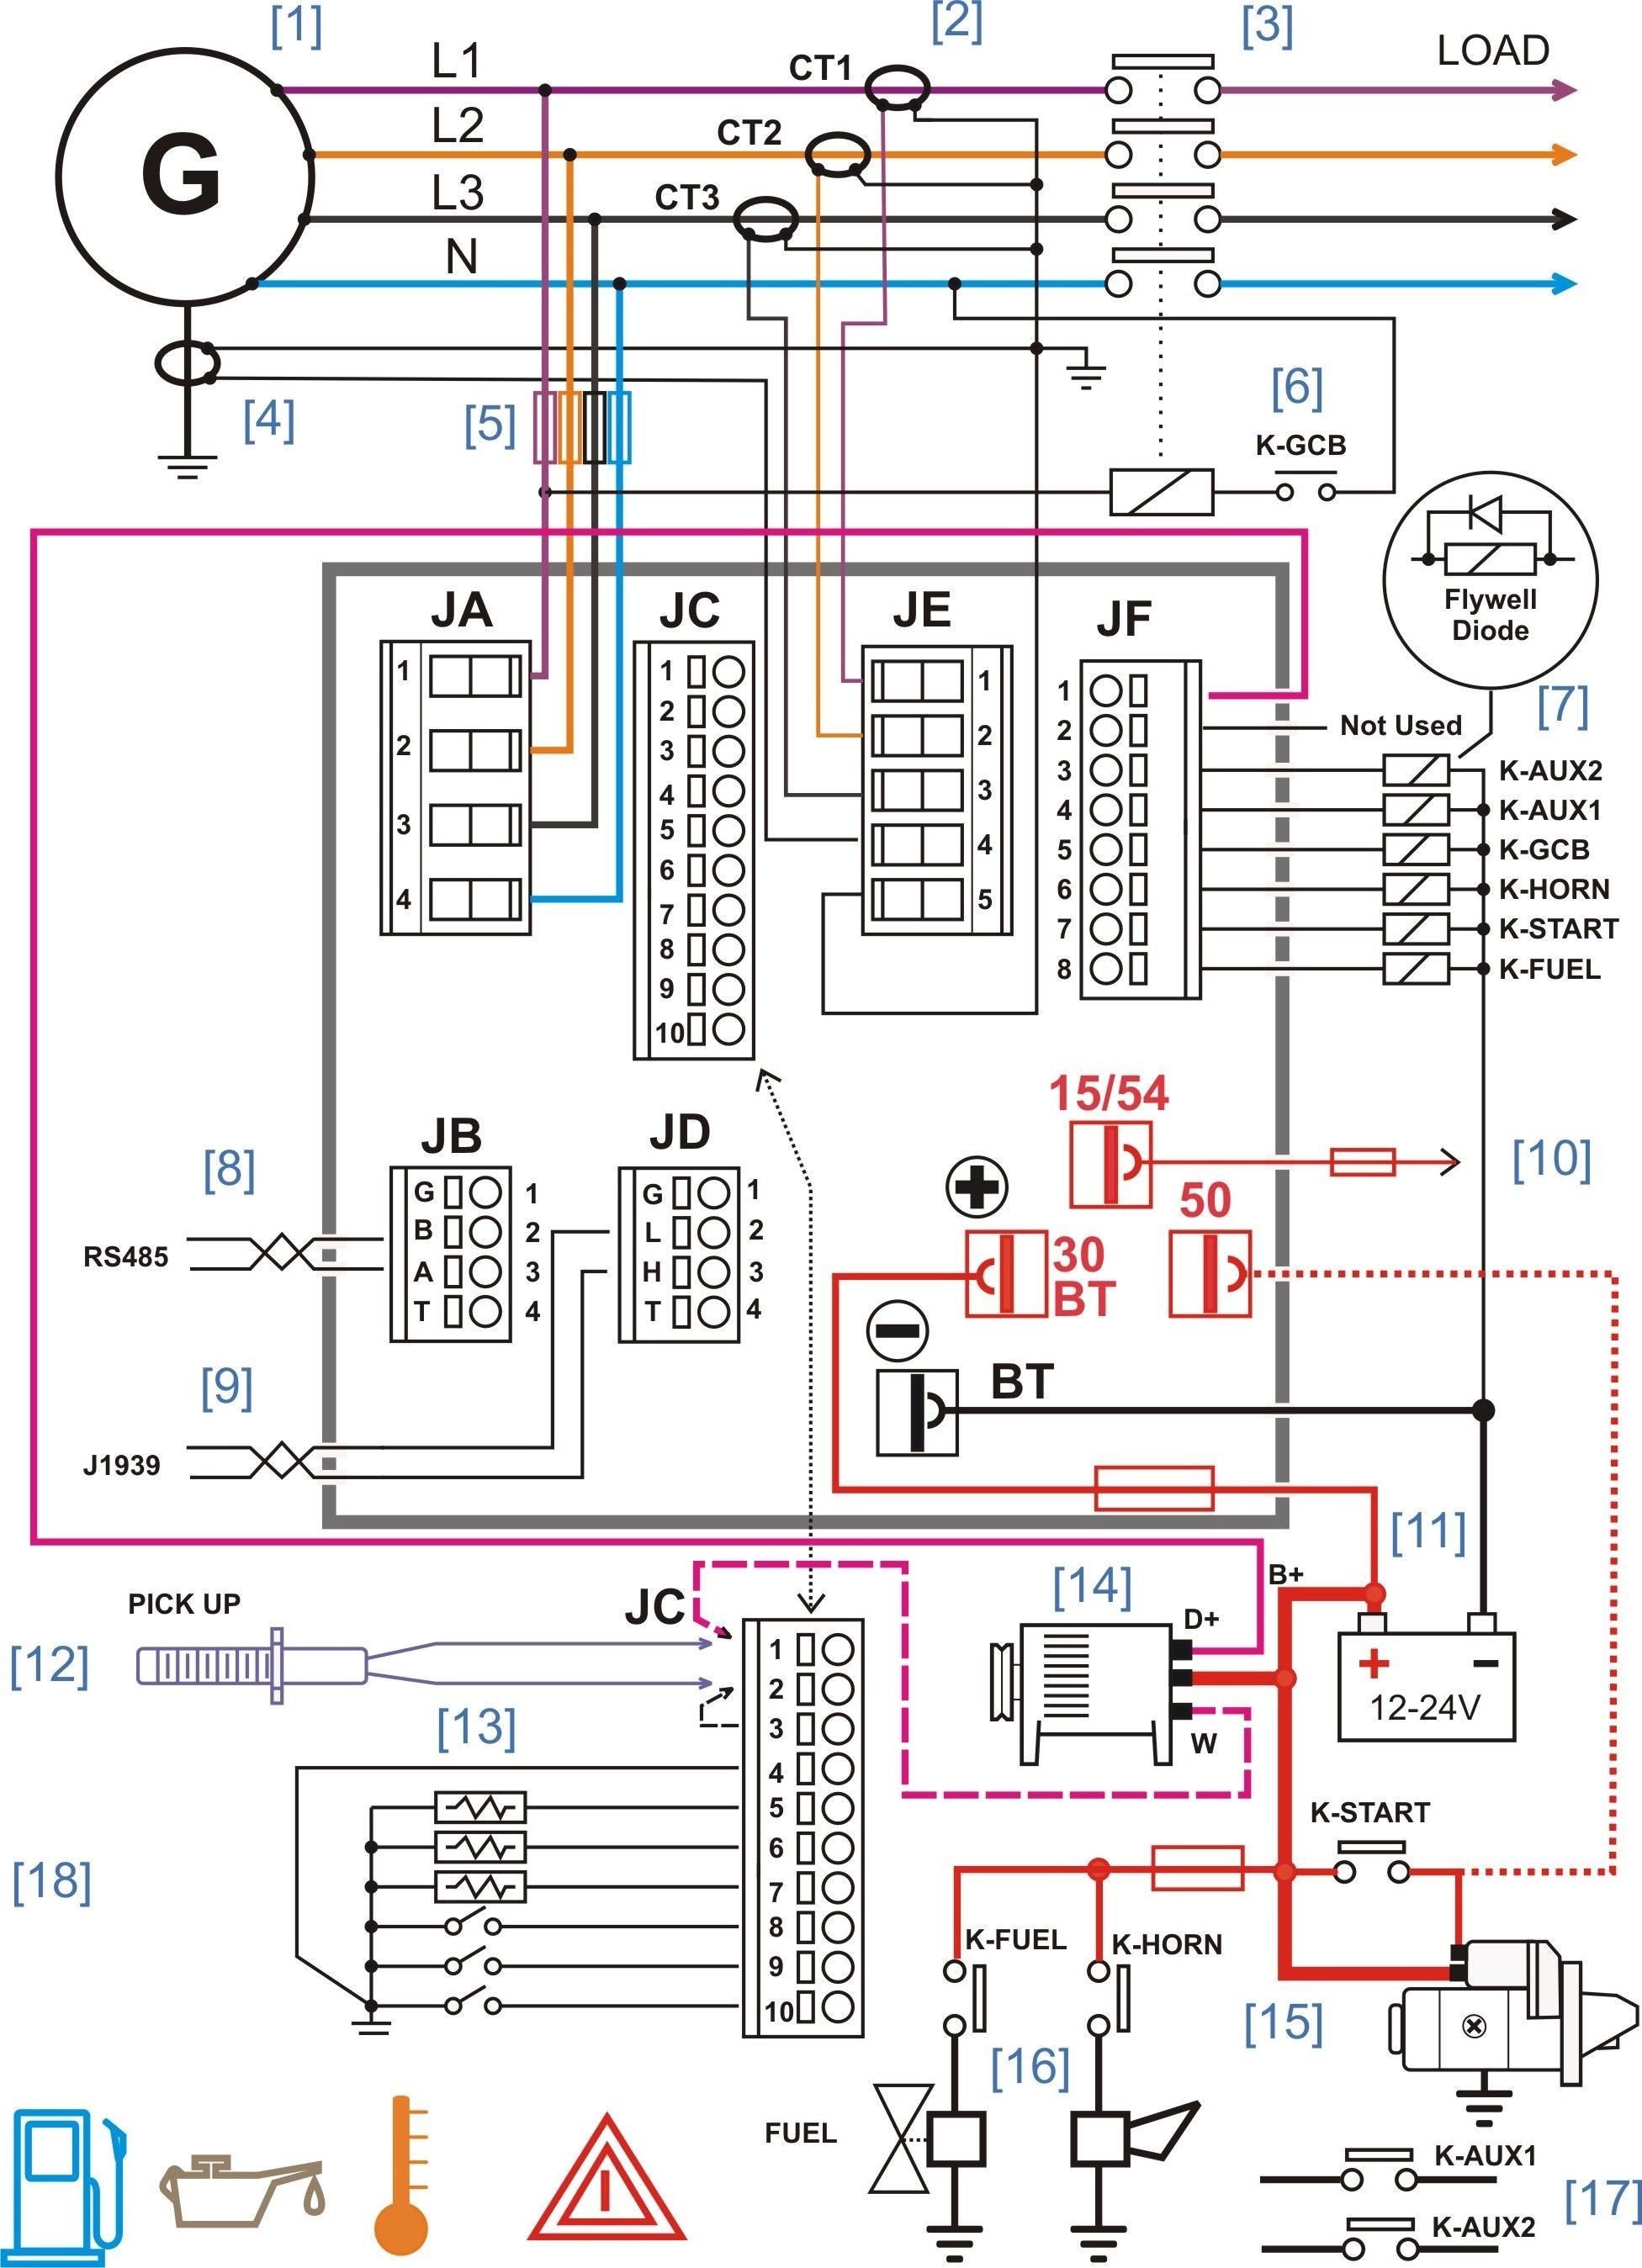 Boat Wiring Diagram software - Circuit Diagram Drawing software Free Fresh Diagram Creator Free Best Circuit Diagram Creator New Boss Od 14g